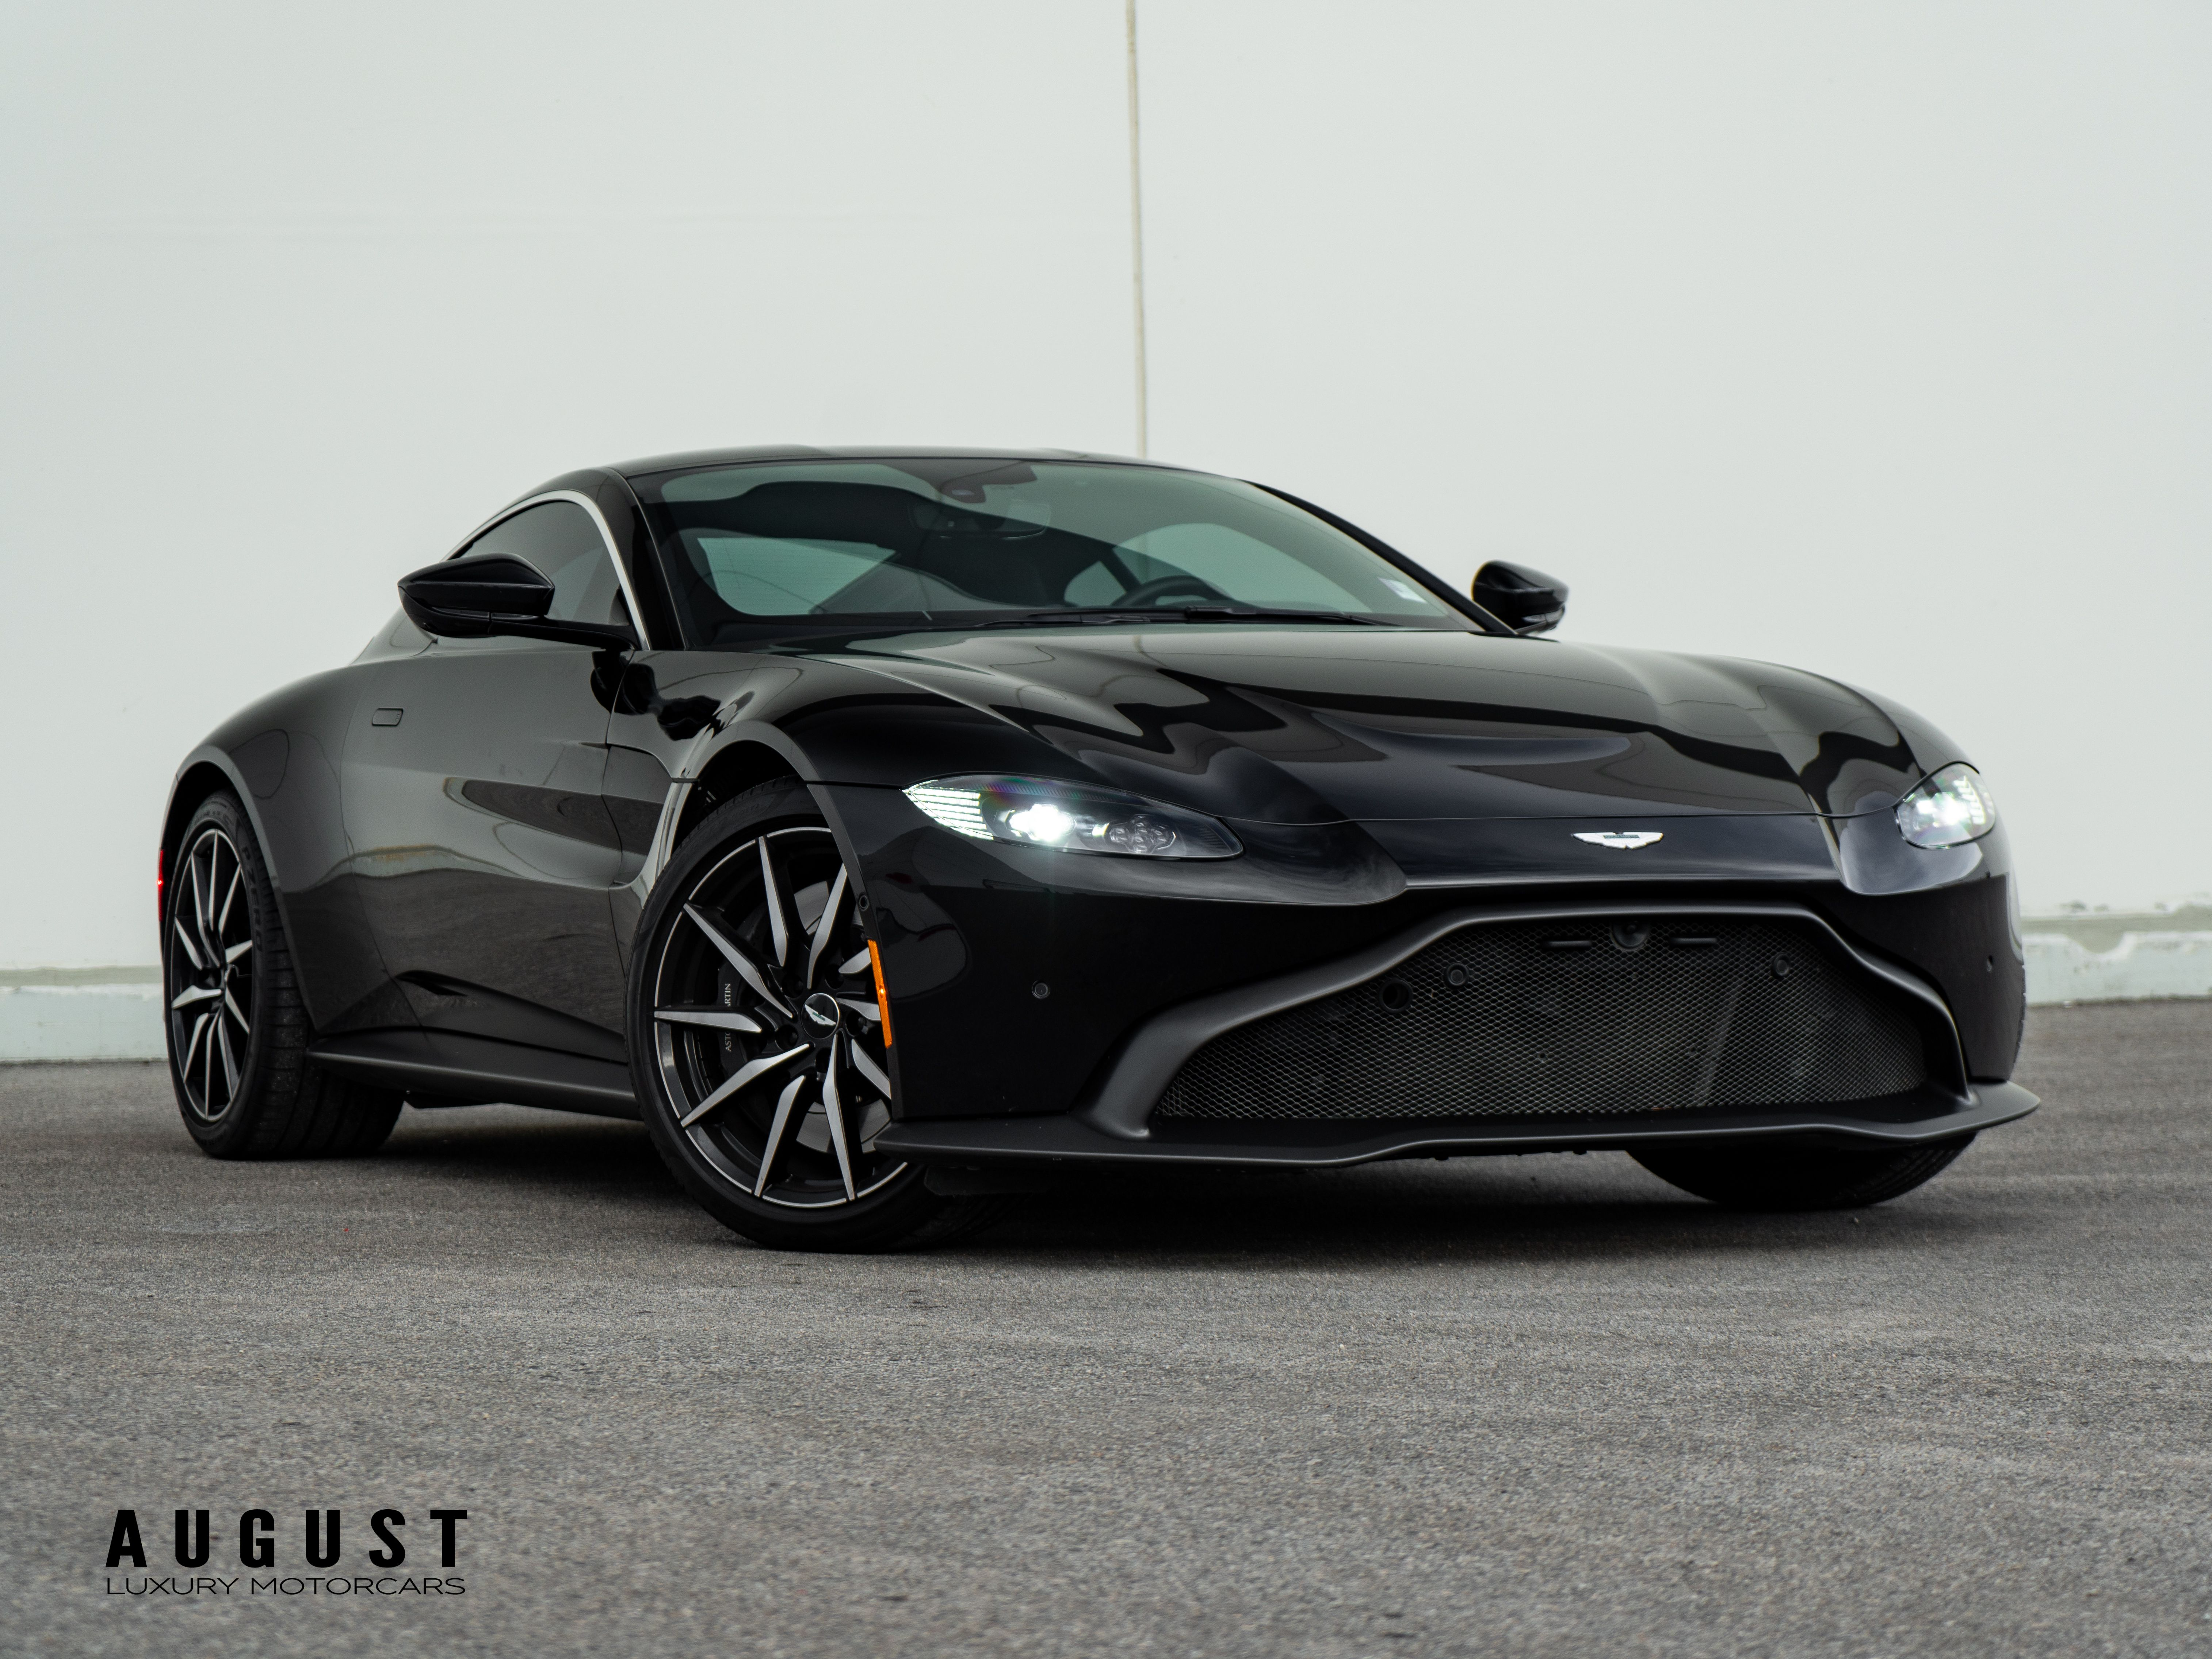 Pre Owned 2019 Aston Martin Vantage In Kelowna Bc Canada Smtl 1027 August Luxury Motorcars